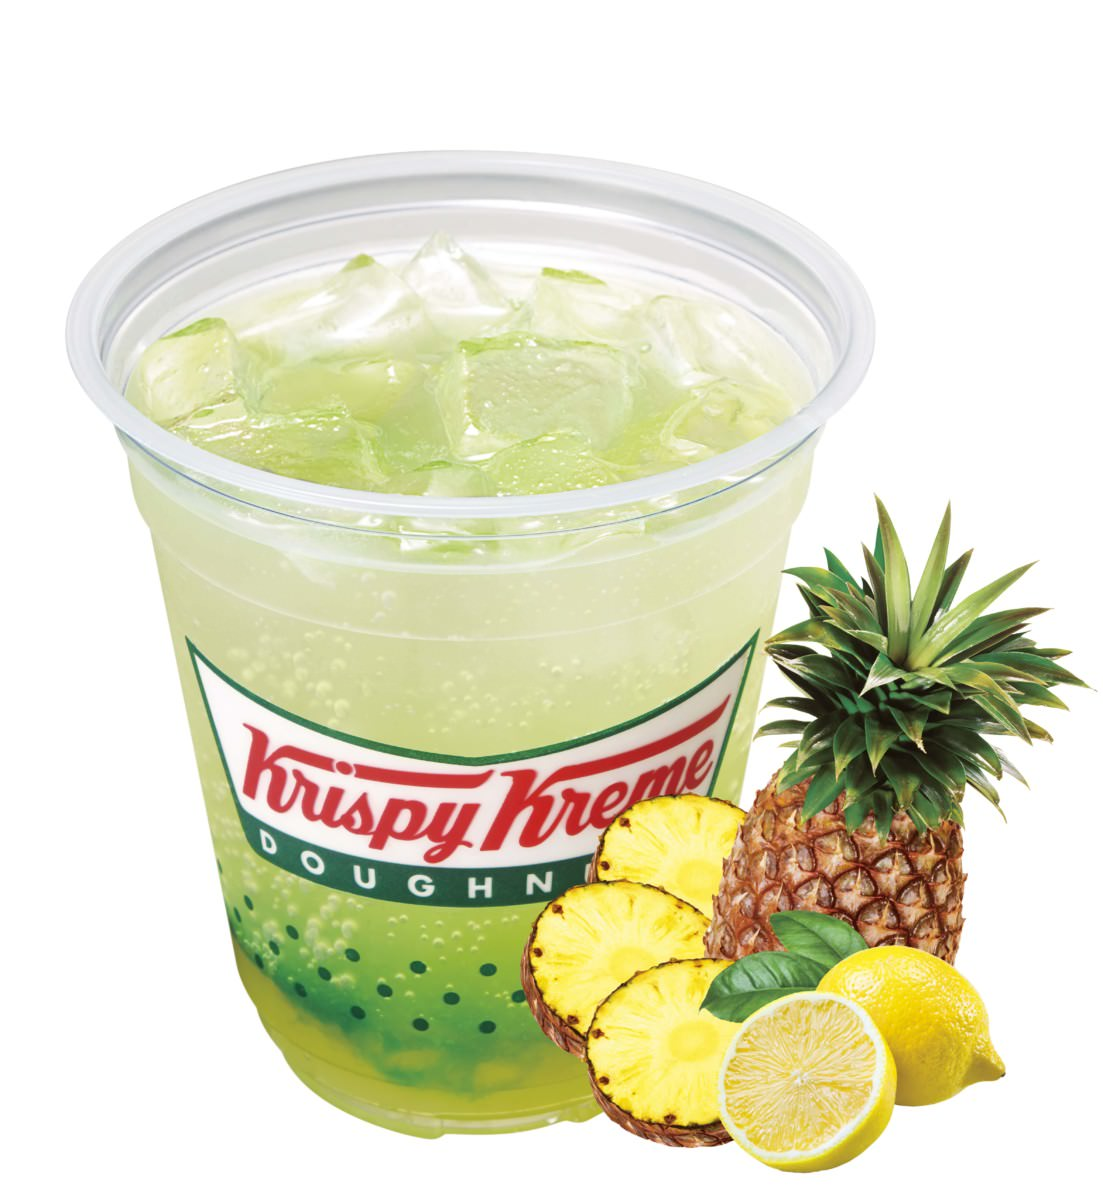 クリスピークリームドーナツ jerry in soda hawaiian pineapple_image_1